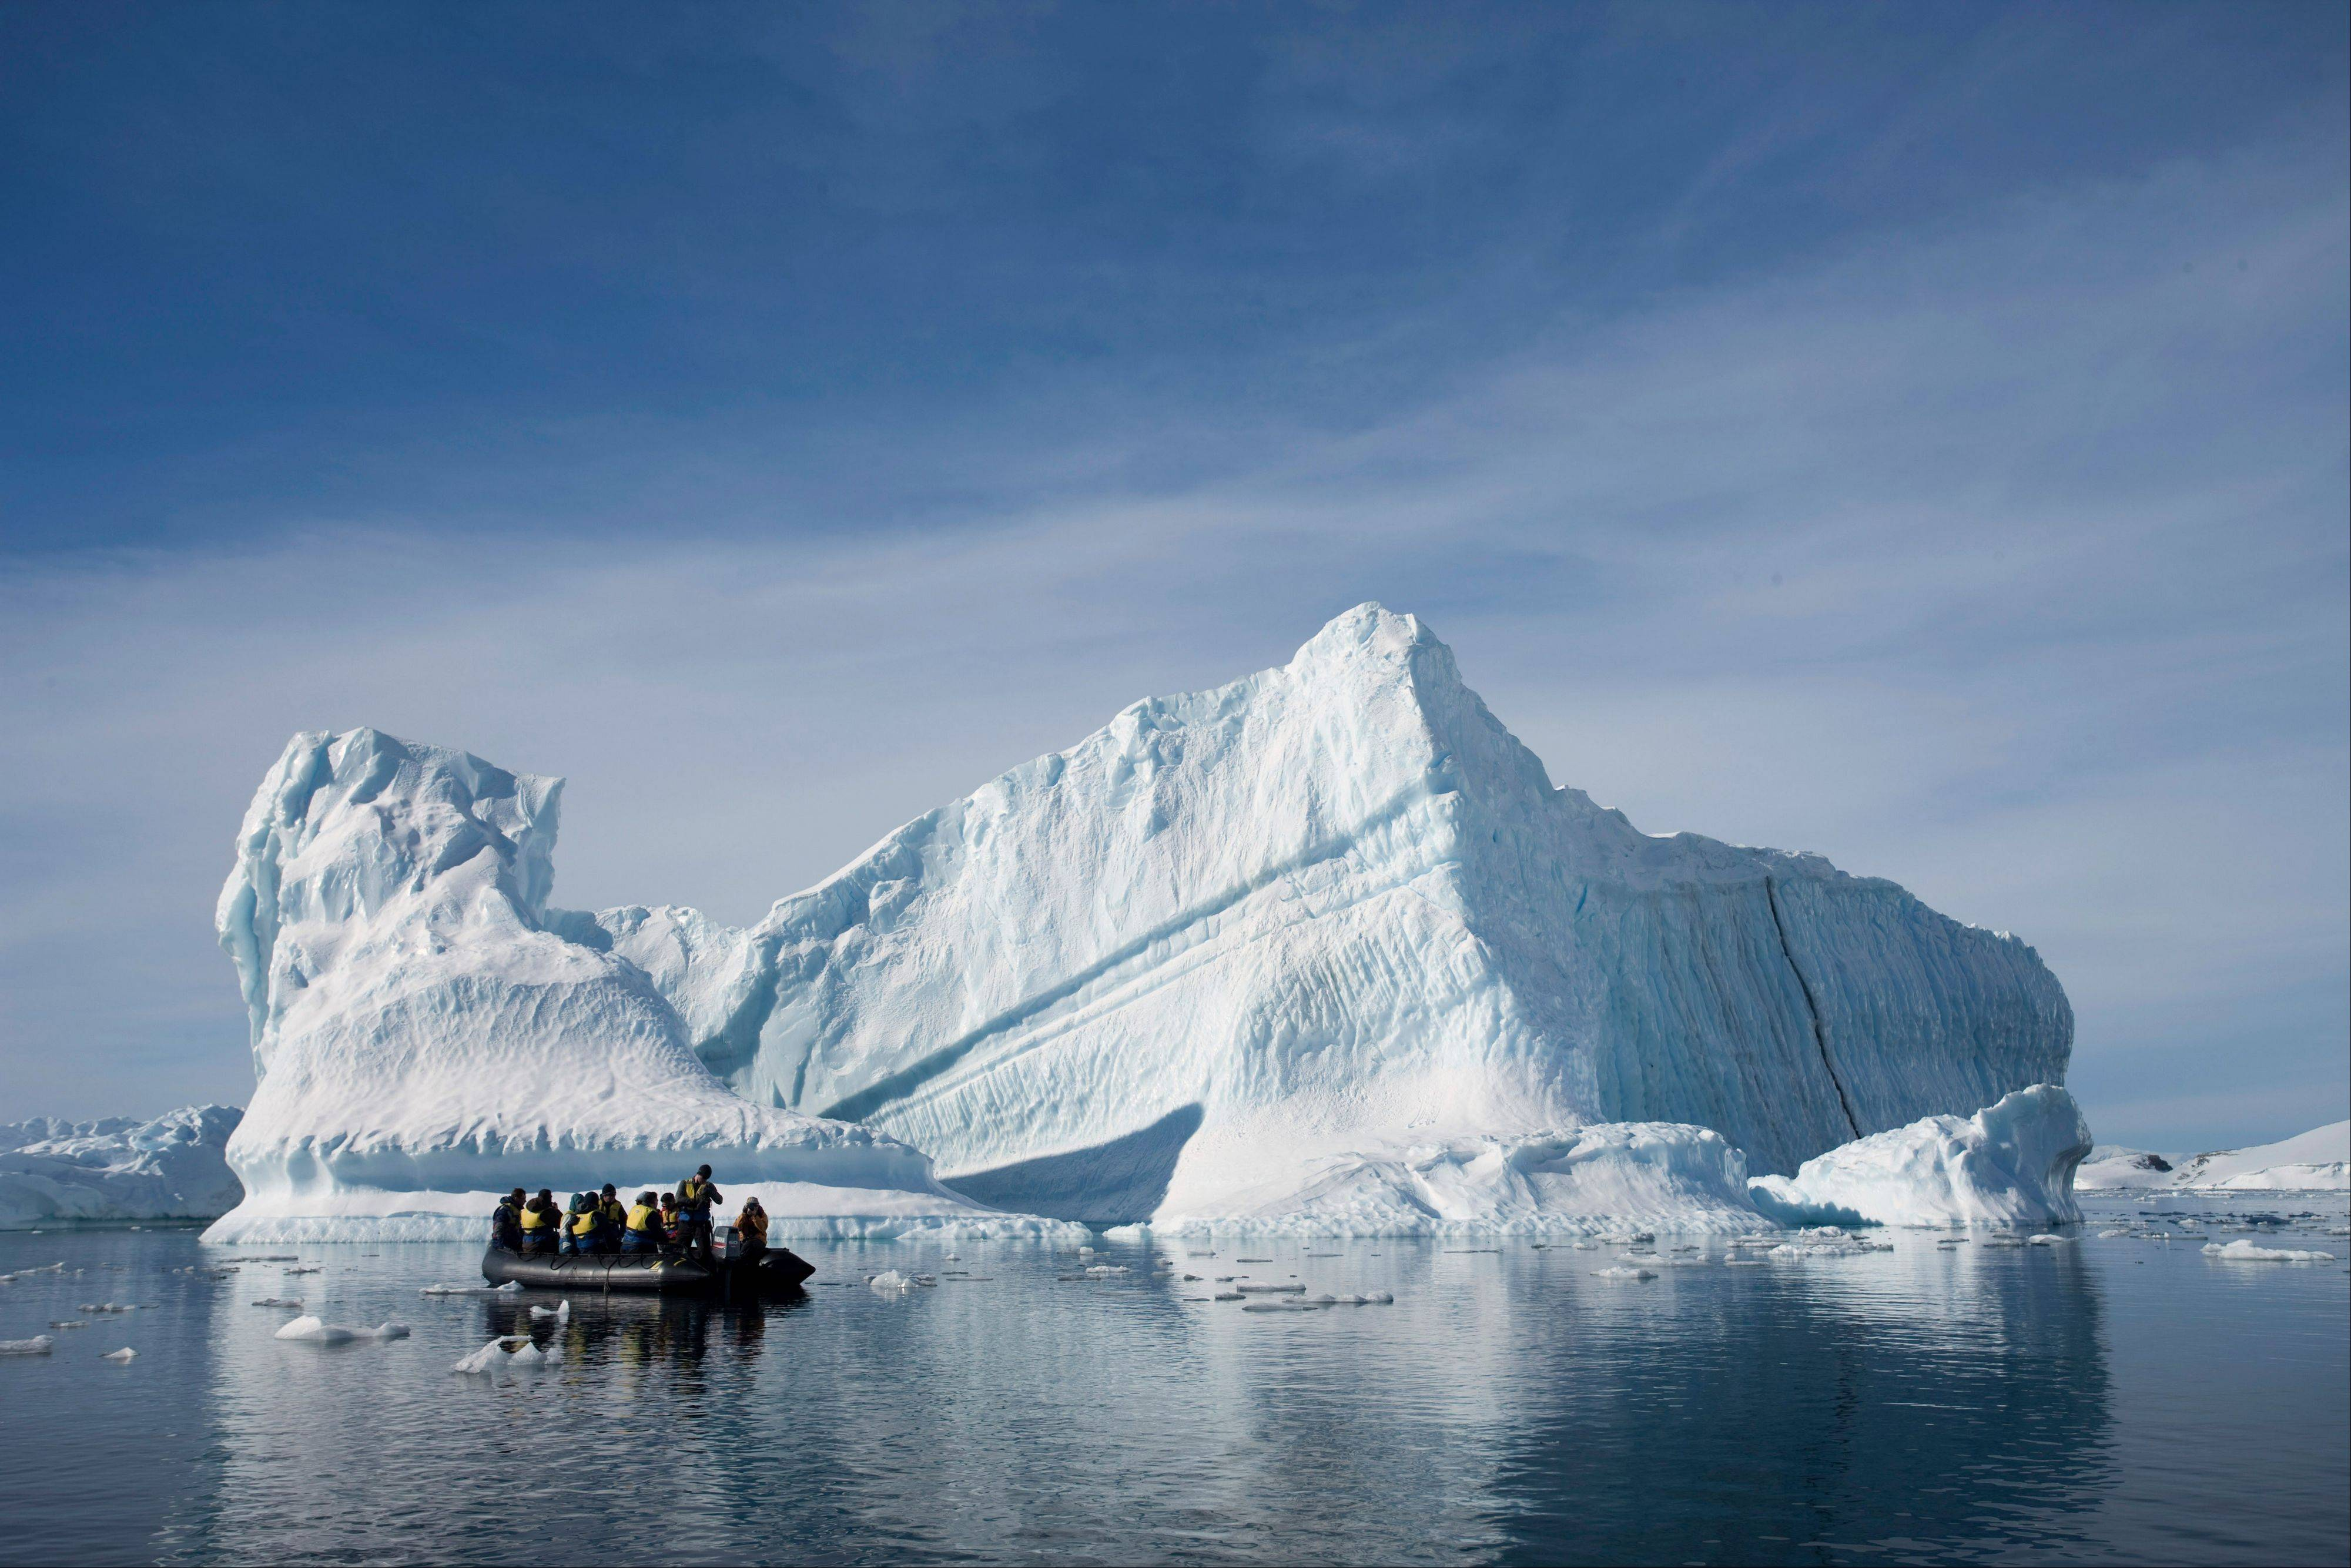 Associated Press/Dec. 1, 2009 An inflatable boat carries tourists past an iceberg along the Antarctic Peninsula.